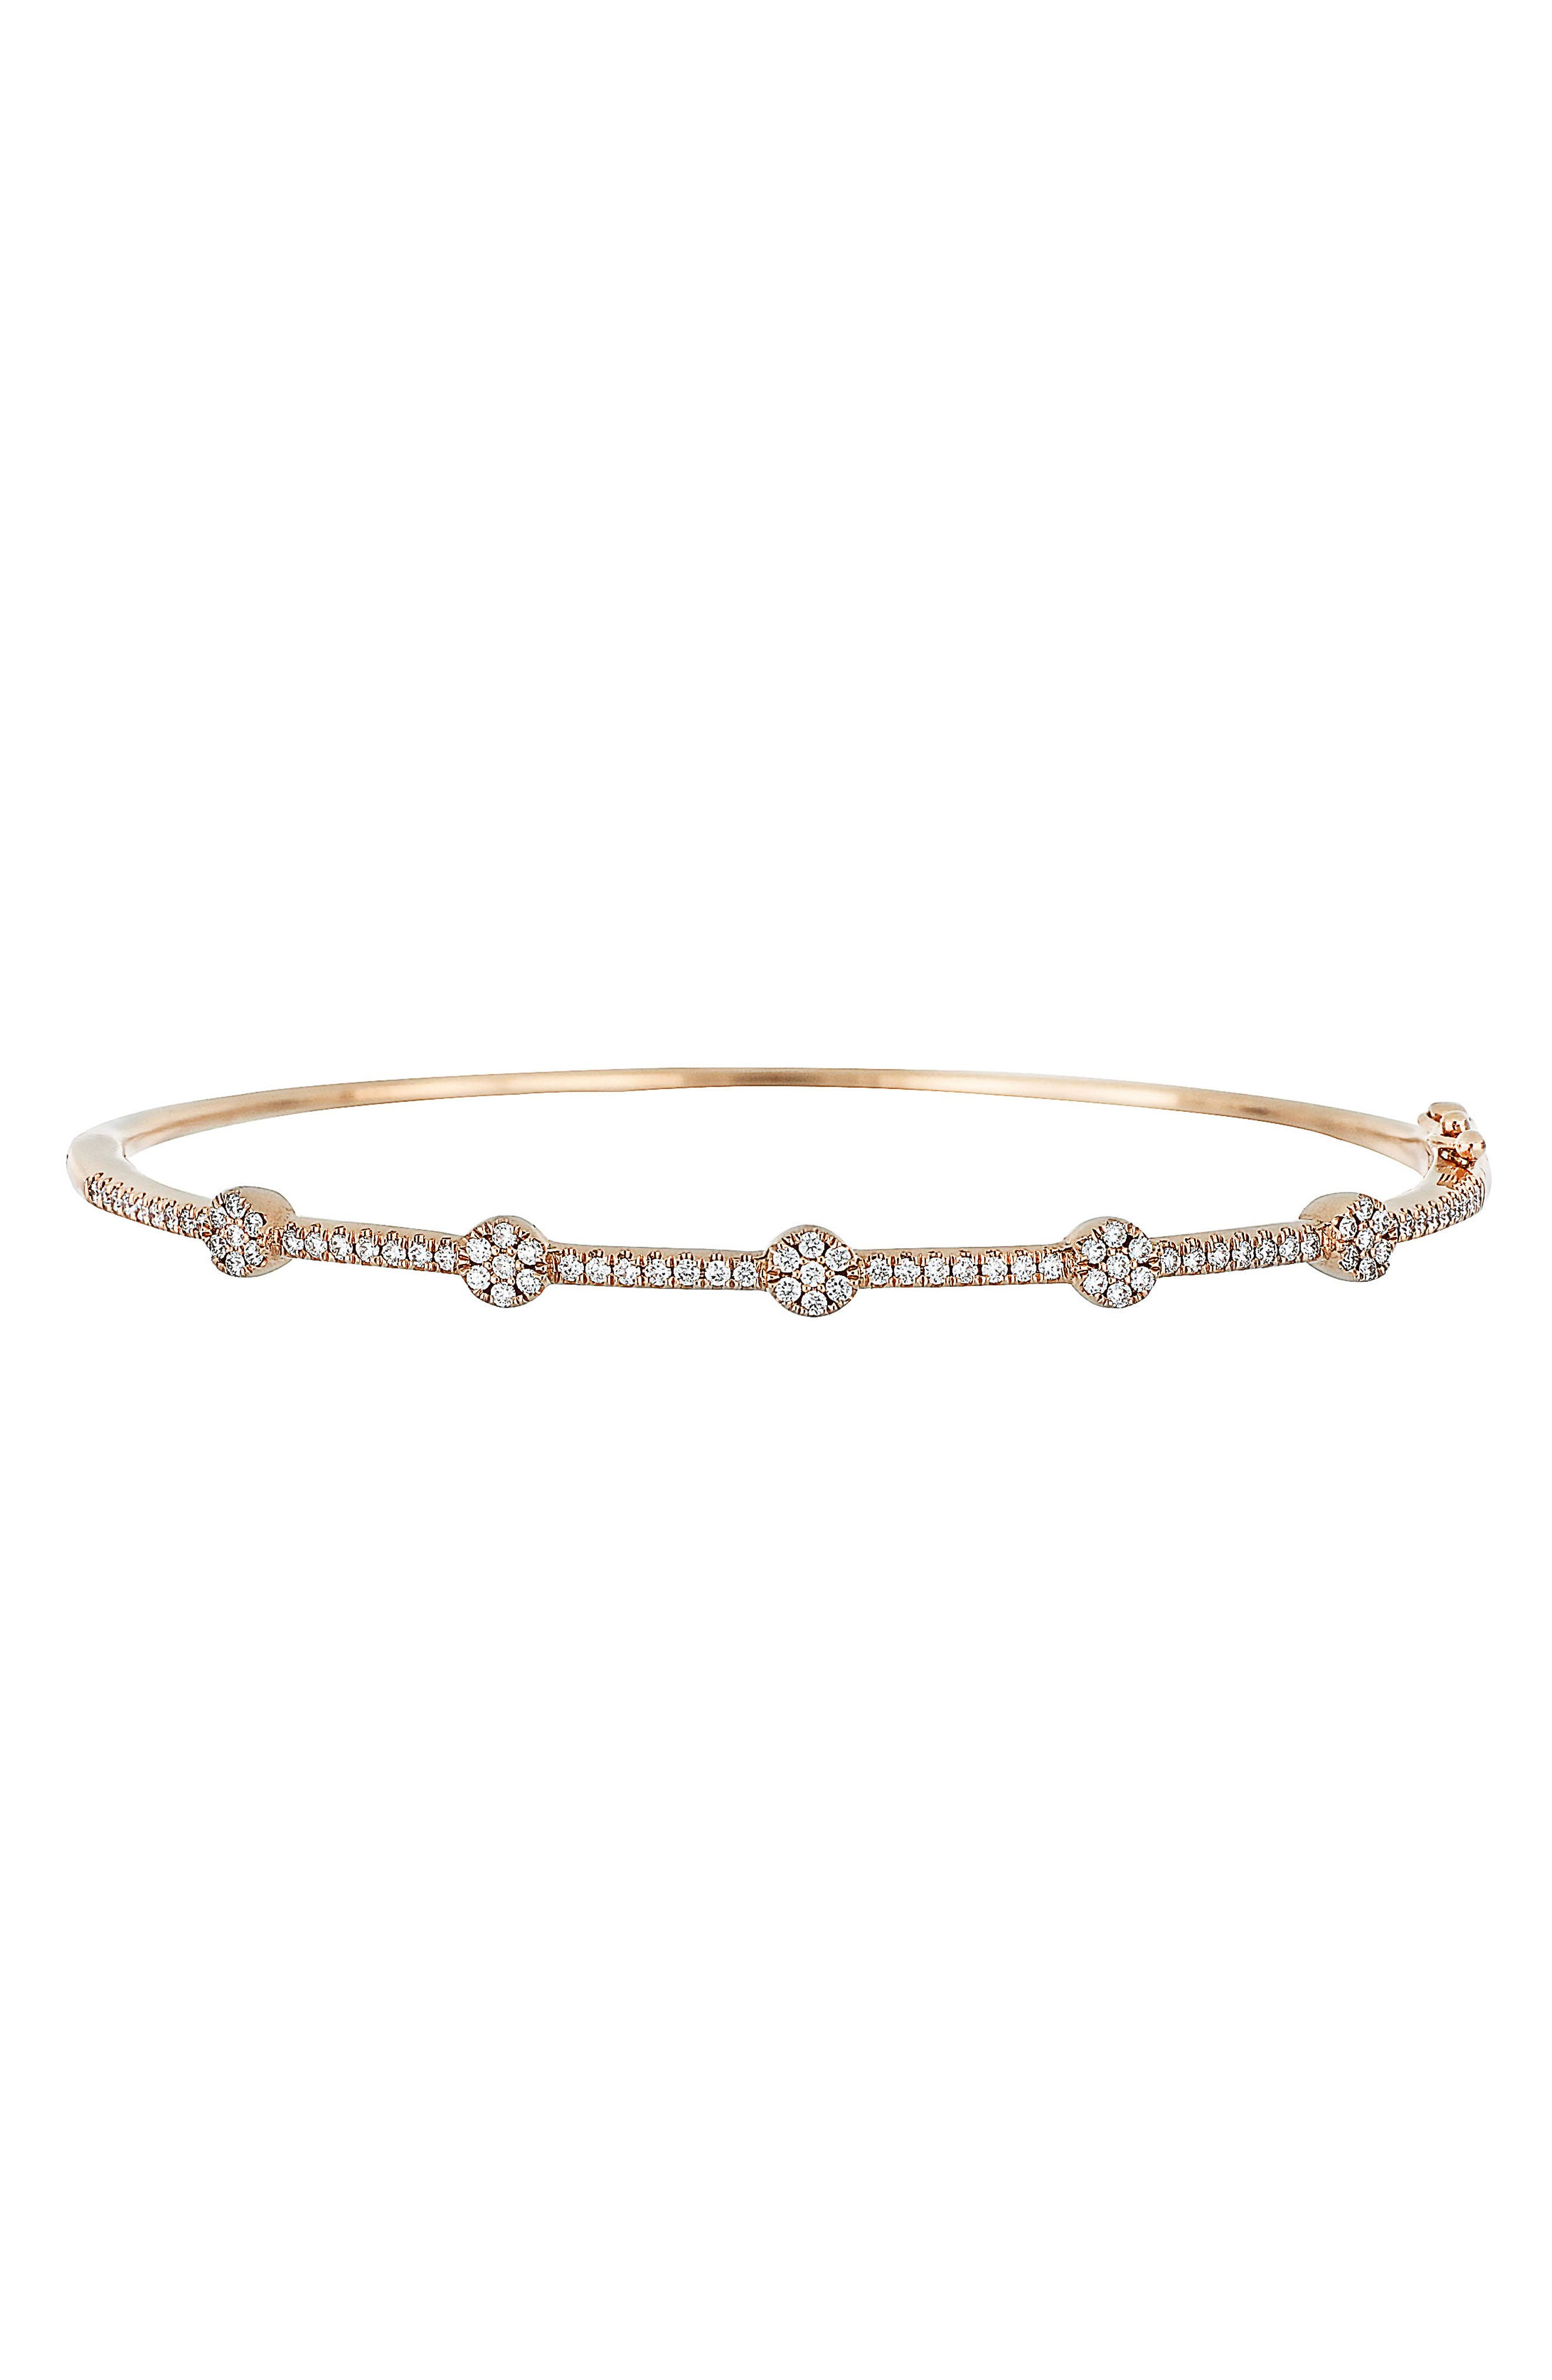 Diamond Station Bangle,                             Main thumbnail 1, color,                             Rose Gold